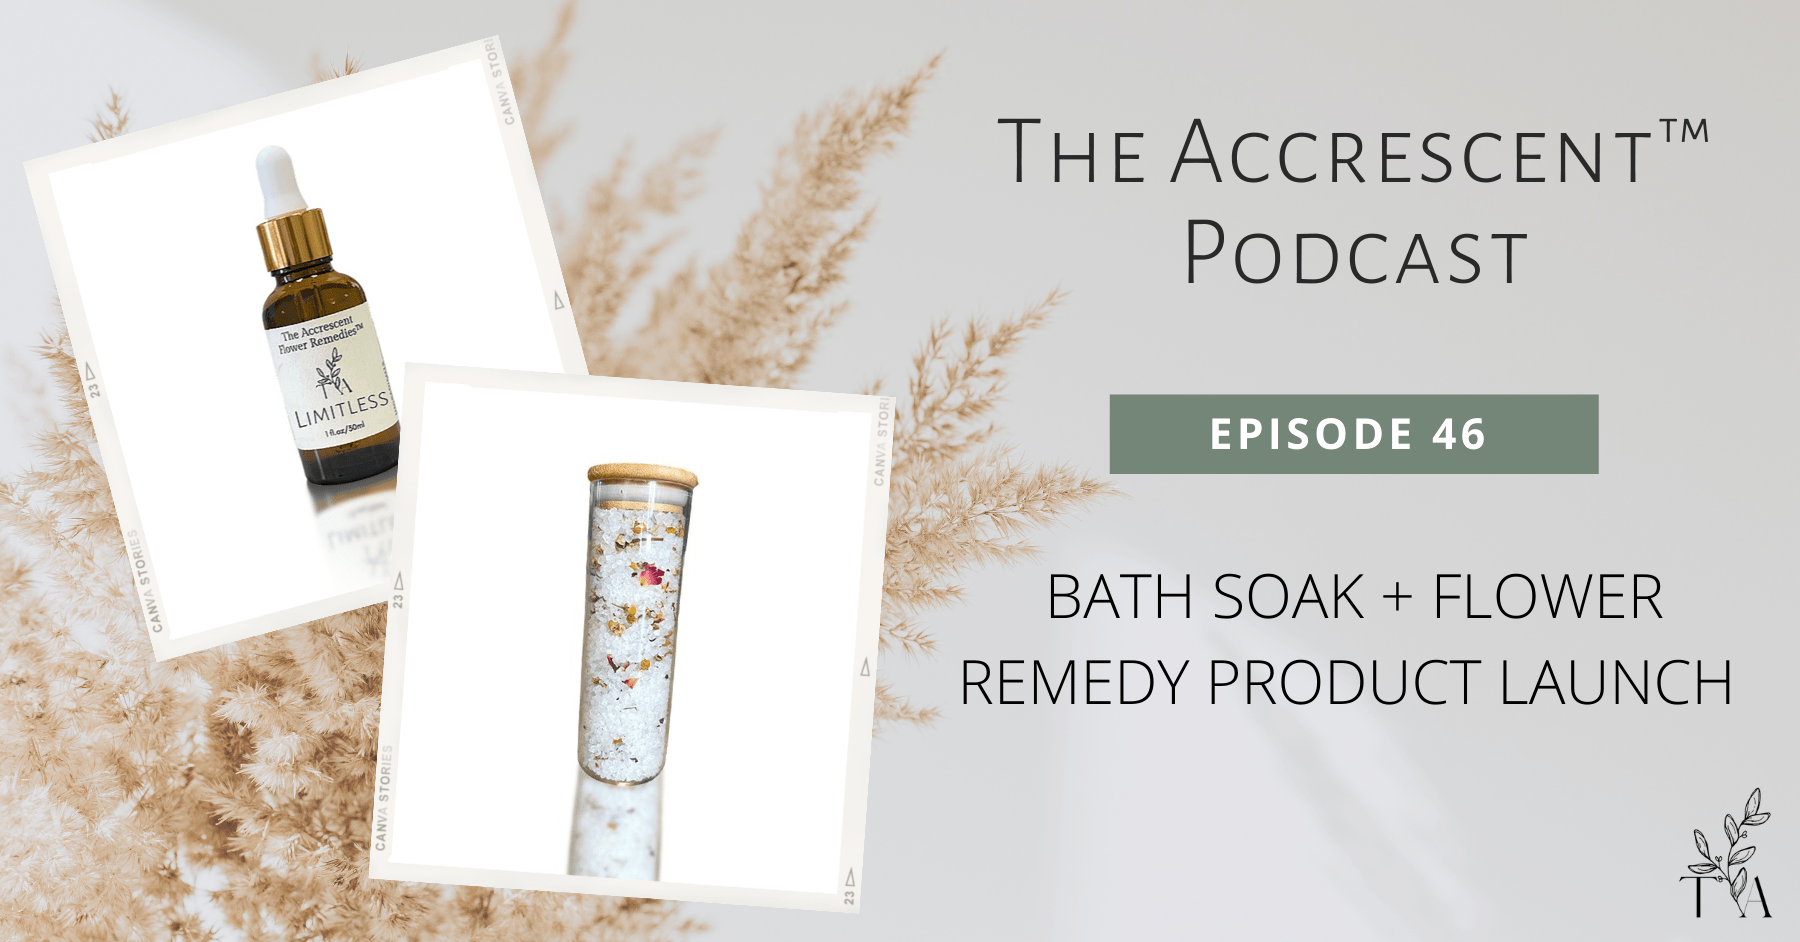 The Accrescent™ Podcast - Bath Soak + Flower Remedy Product Launch